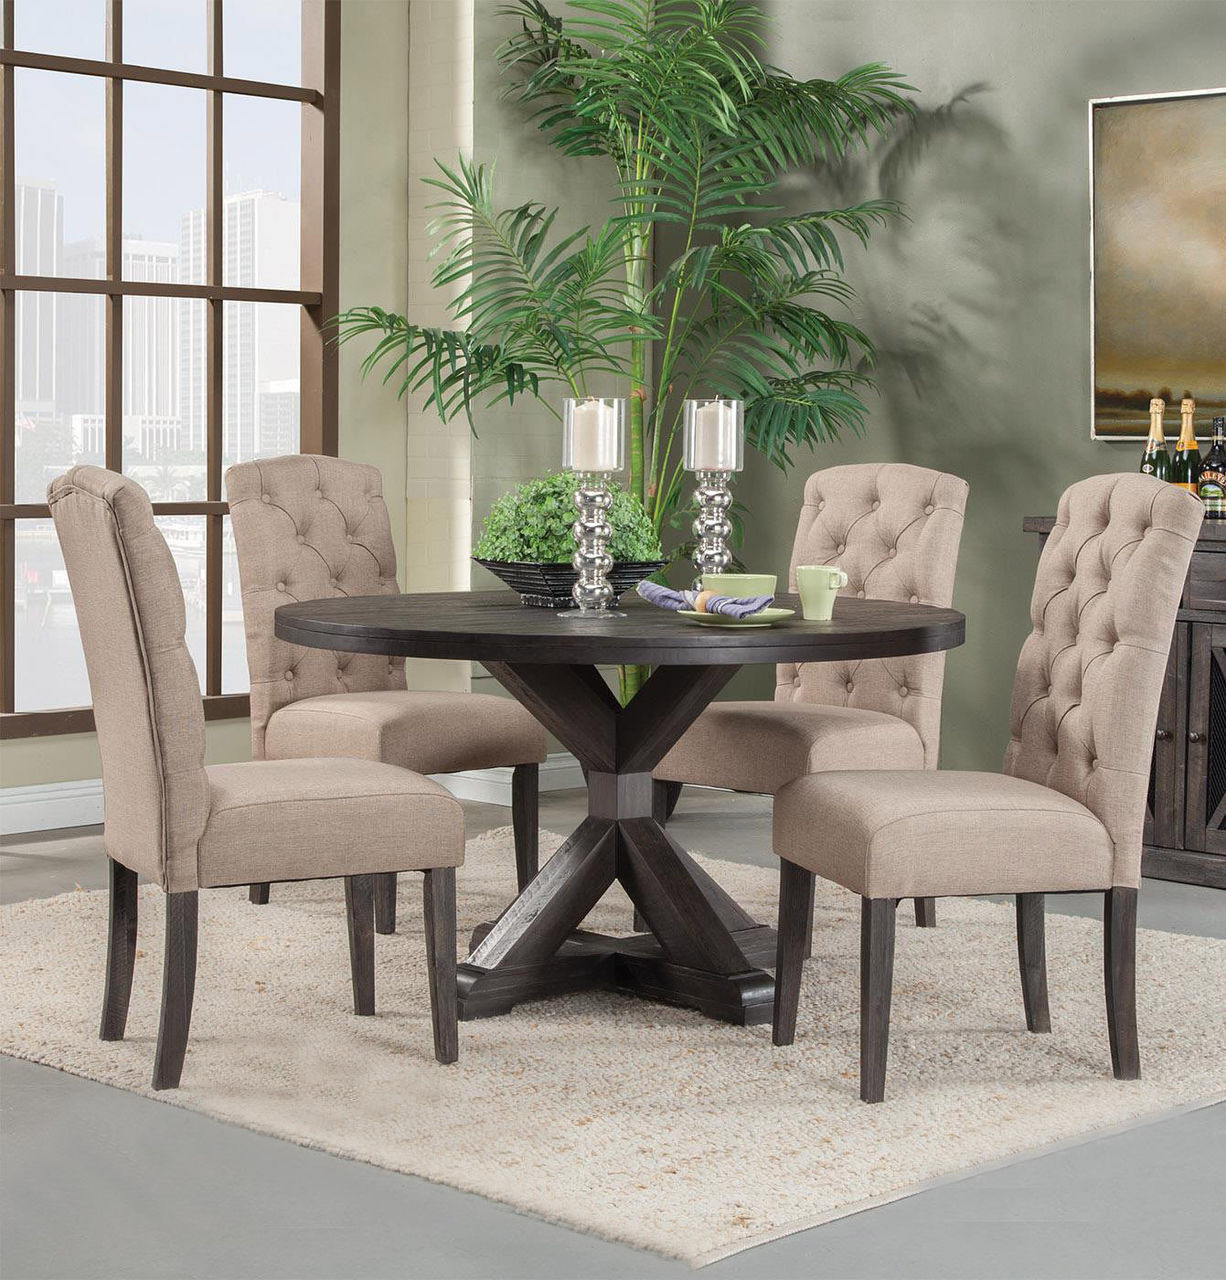 Alpine Newberry 54 Round Dining Room Table Set in Salvaged Grey